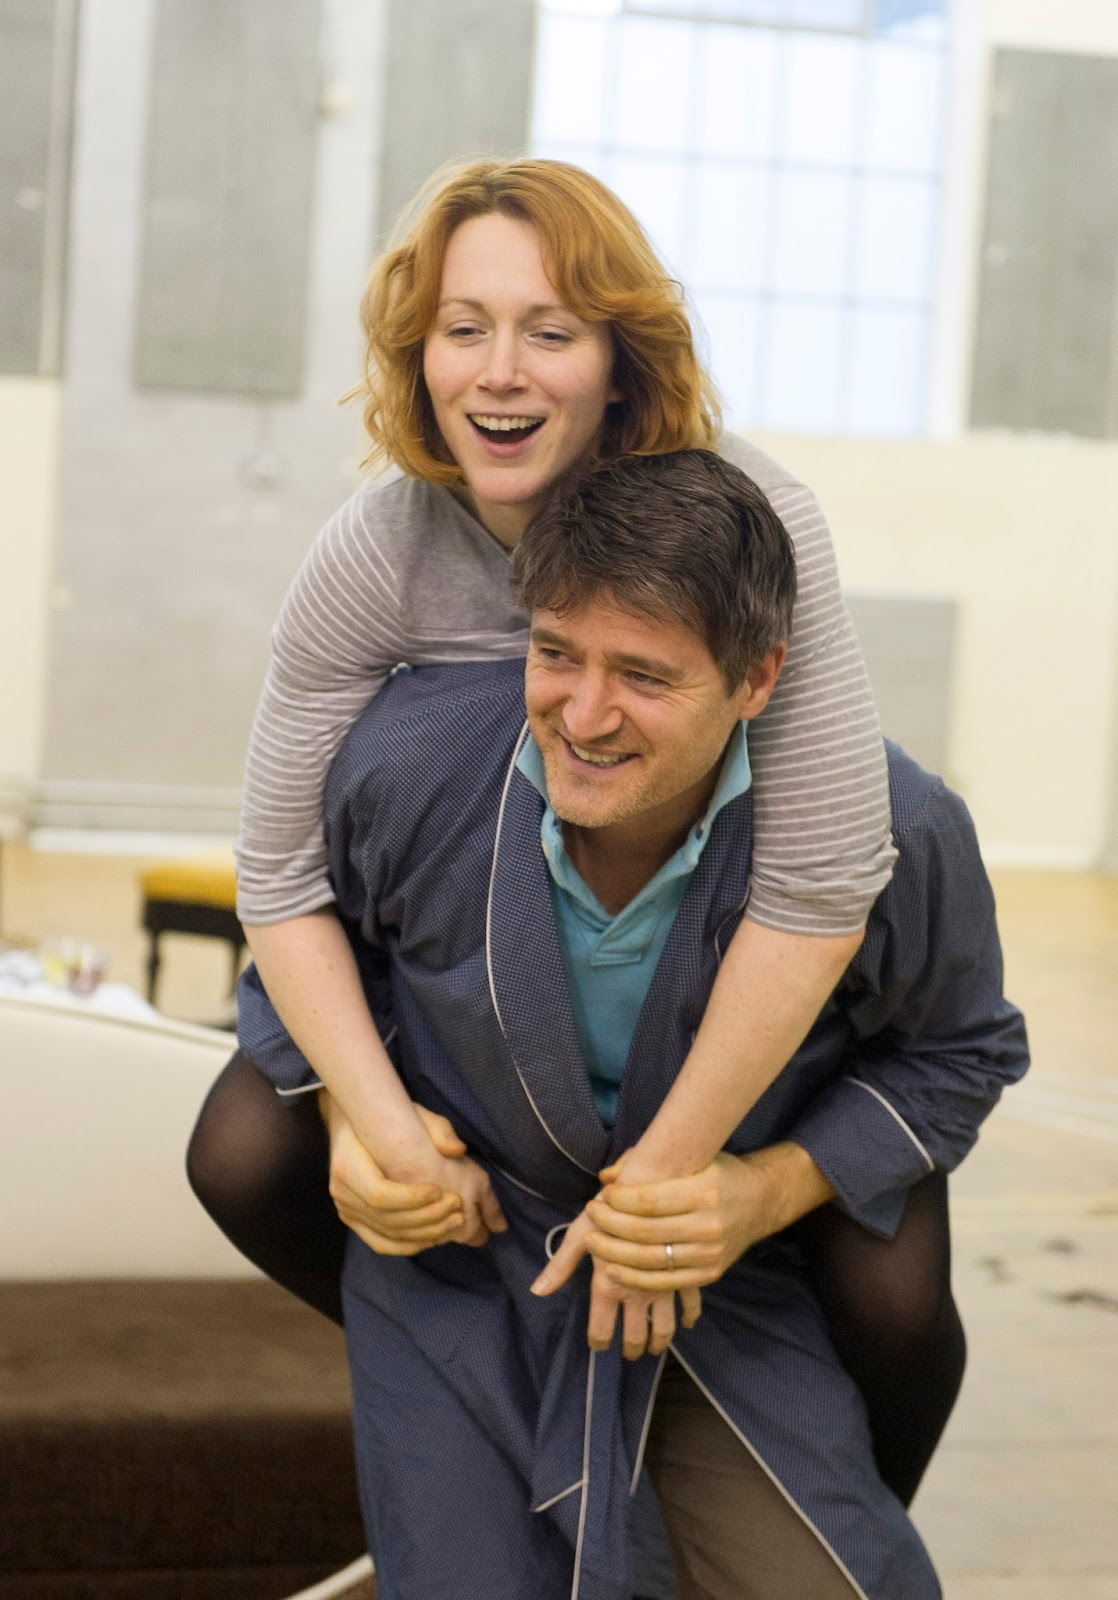 West End Frame Rehearsal Pics Private Lives starring Tom